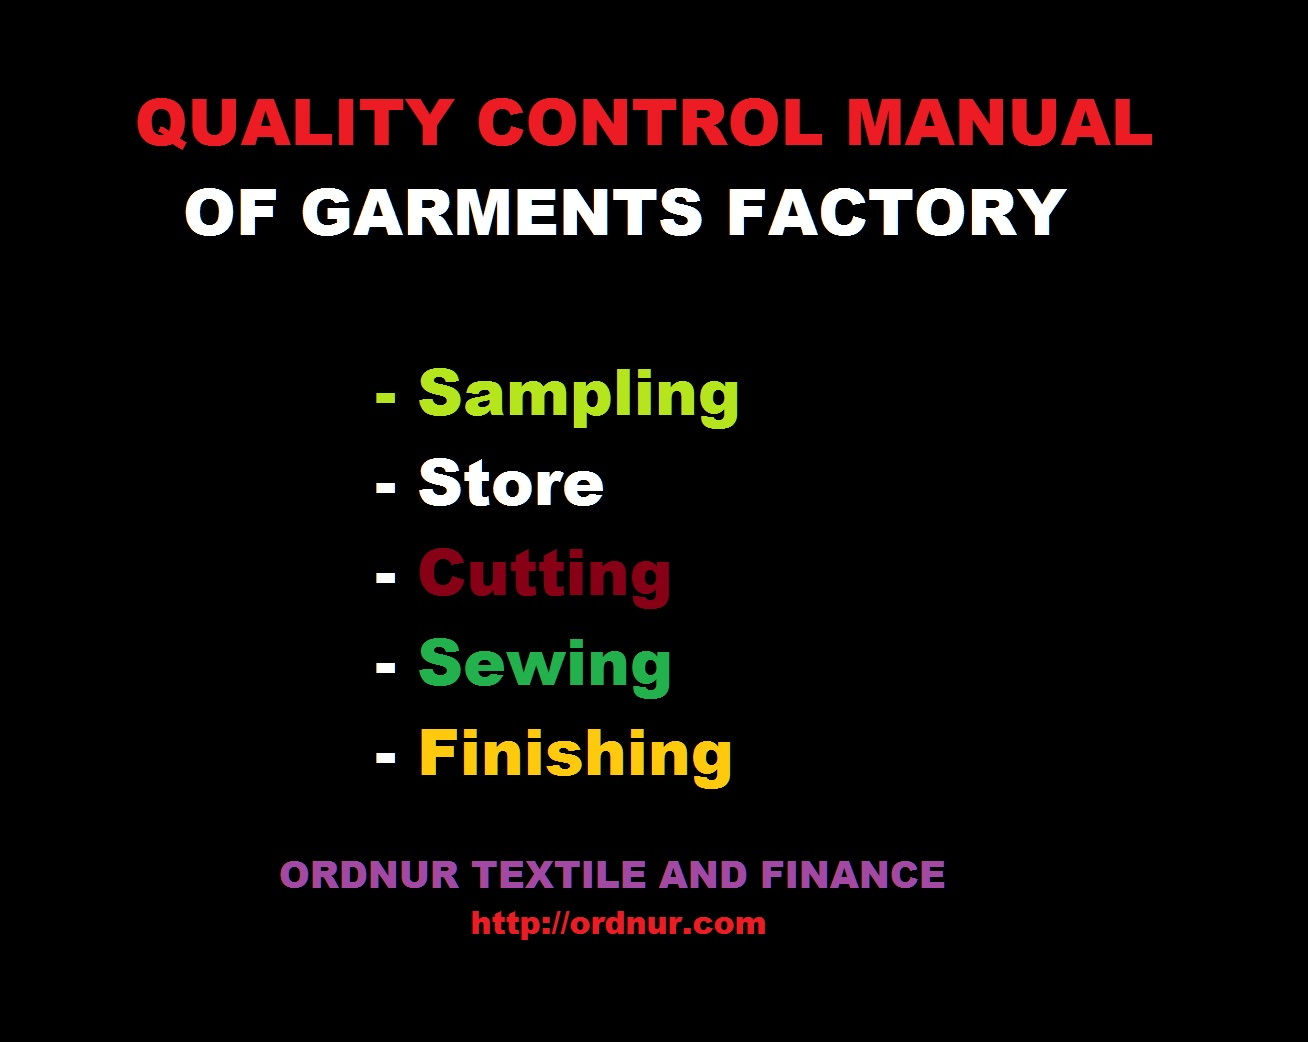 Quality Control Manual Of Garments Ordnur Textile And